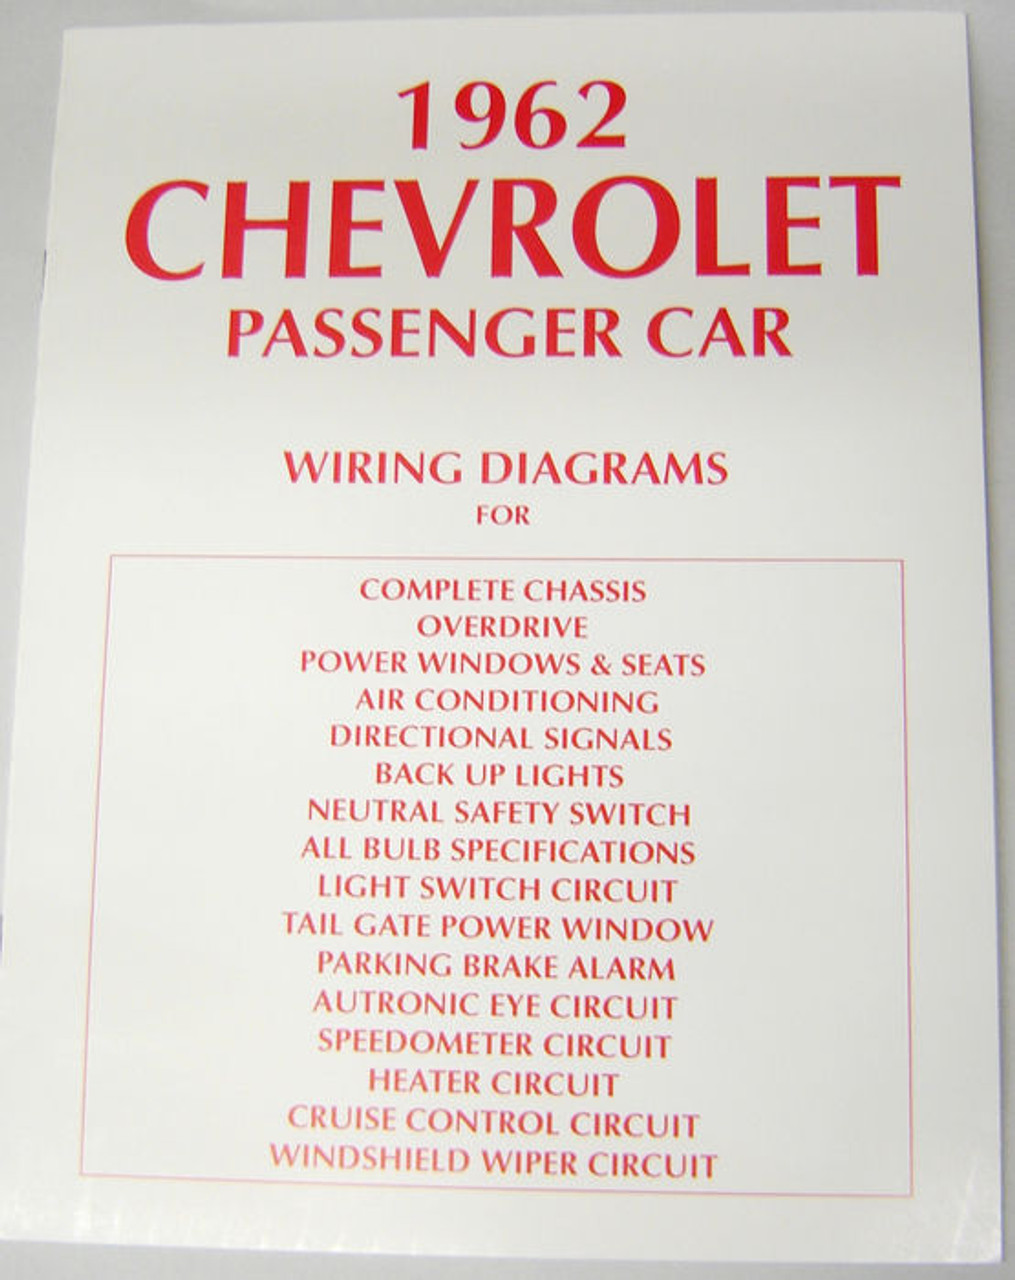 62 chevy impala electrical wiring diagram manual 1962 i 5 classic rh i5chevy com 1964 impala wiring diagram for ignition 1962 chevrolet impala wiring diagram